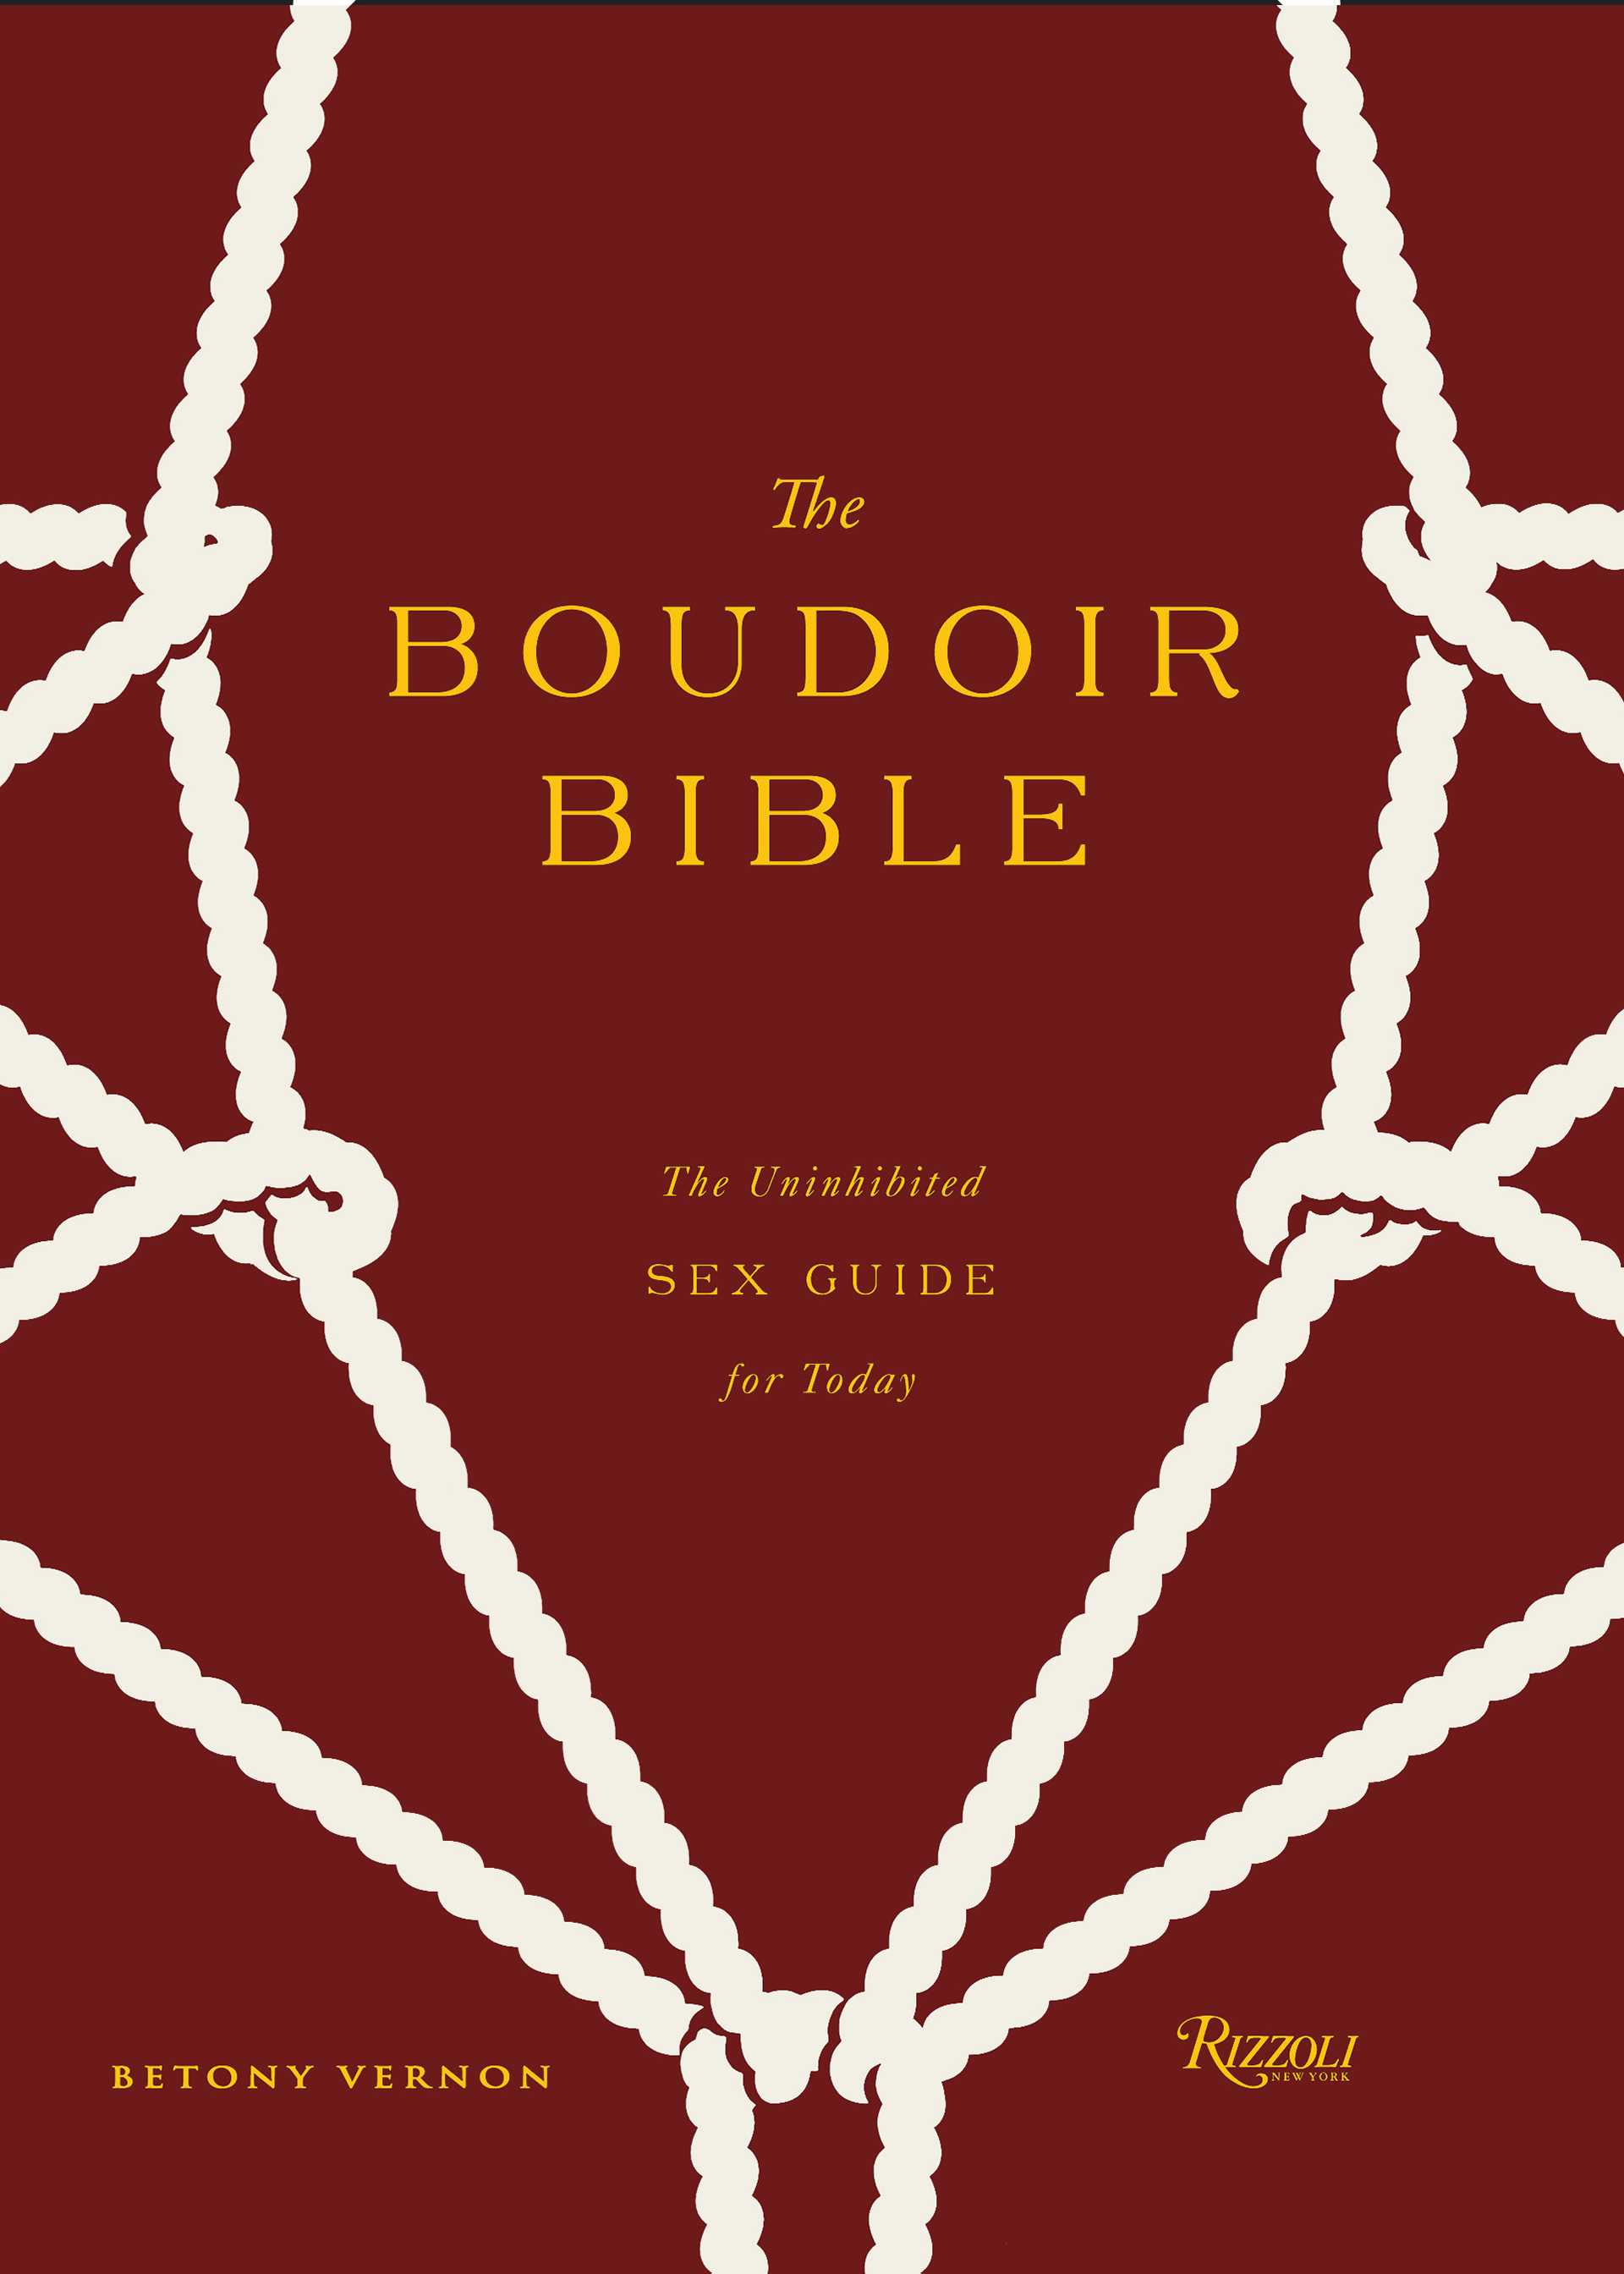 Boudoirbible Frontcover Red Hi Res X 181003 082448 1